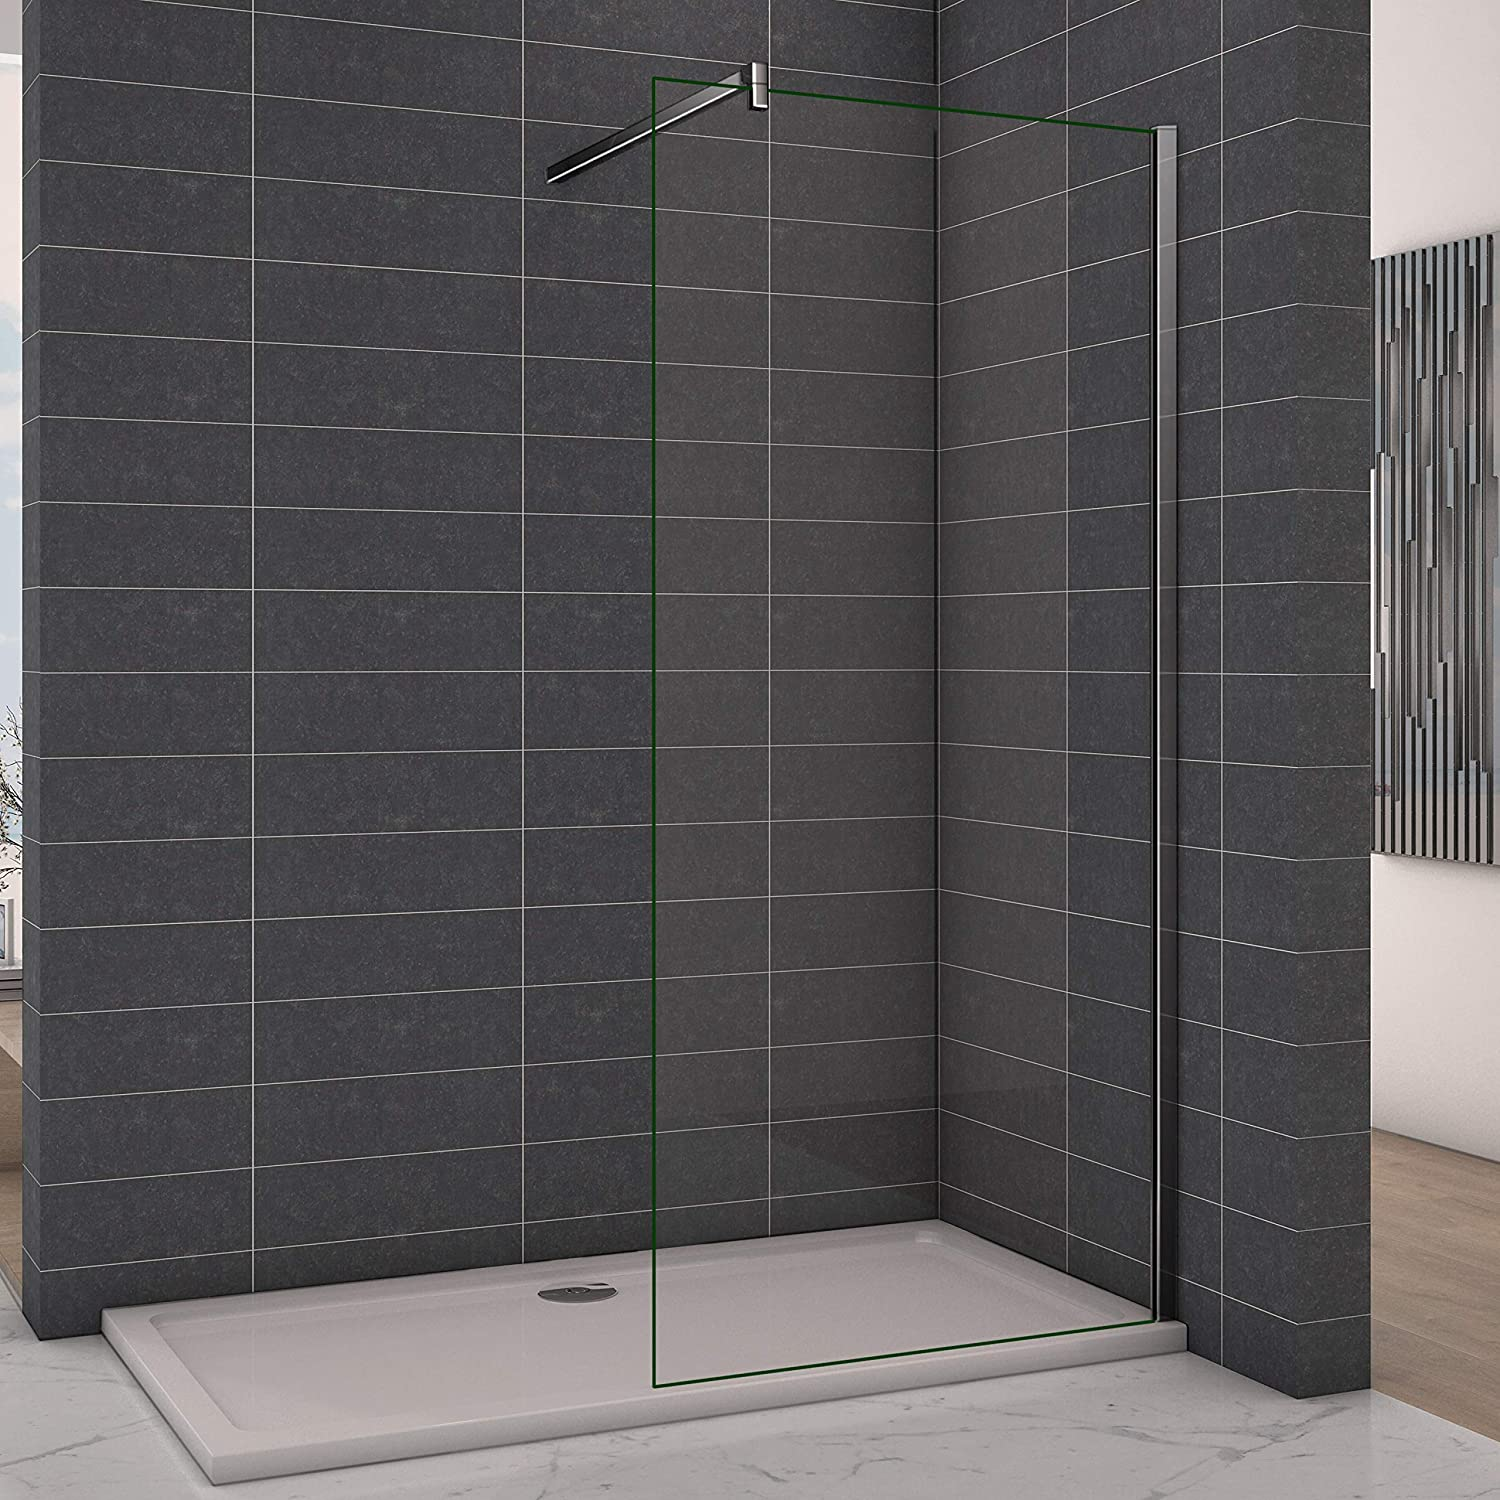 Perfect 700mm Walkin Wetroom Shower Screen Panel 8mm Easy Clean Glass Shower Enclosure with Support Bar